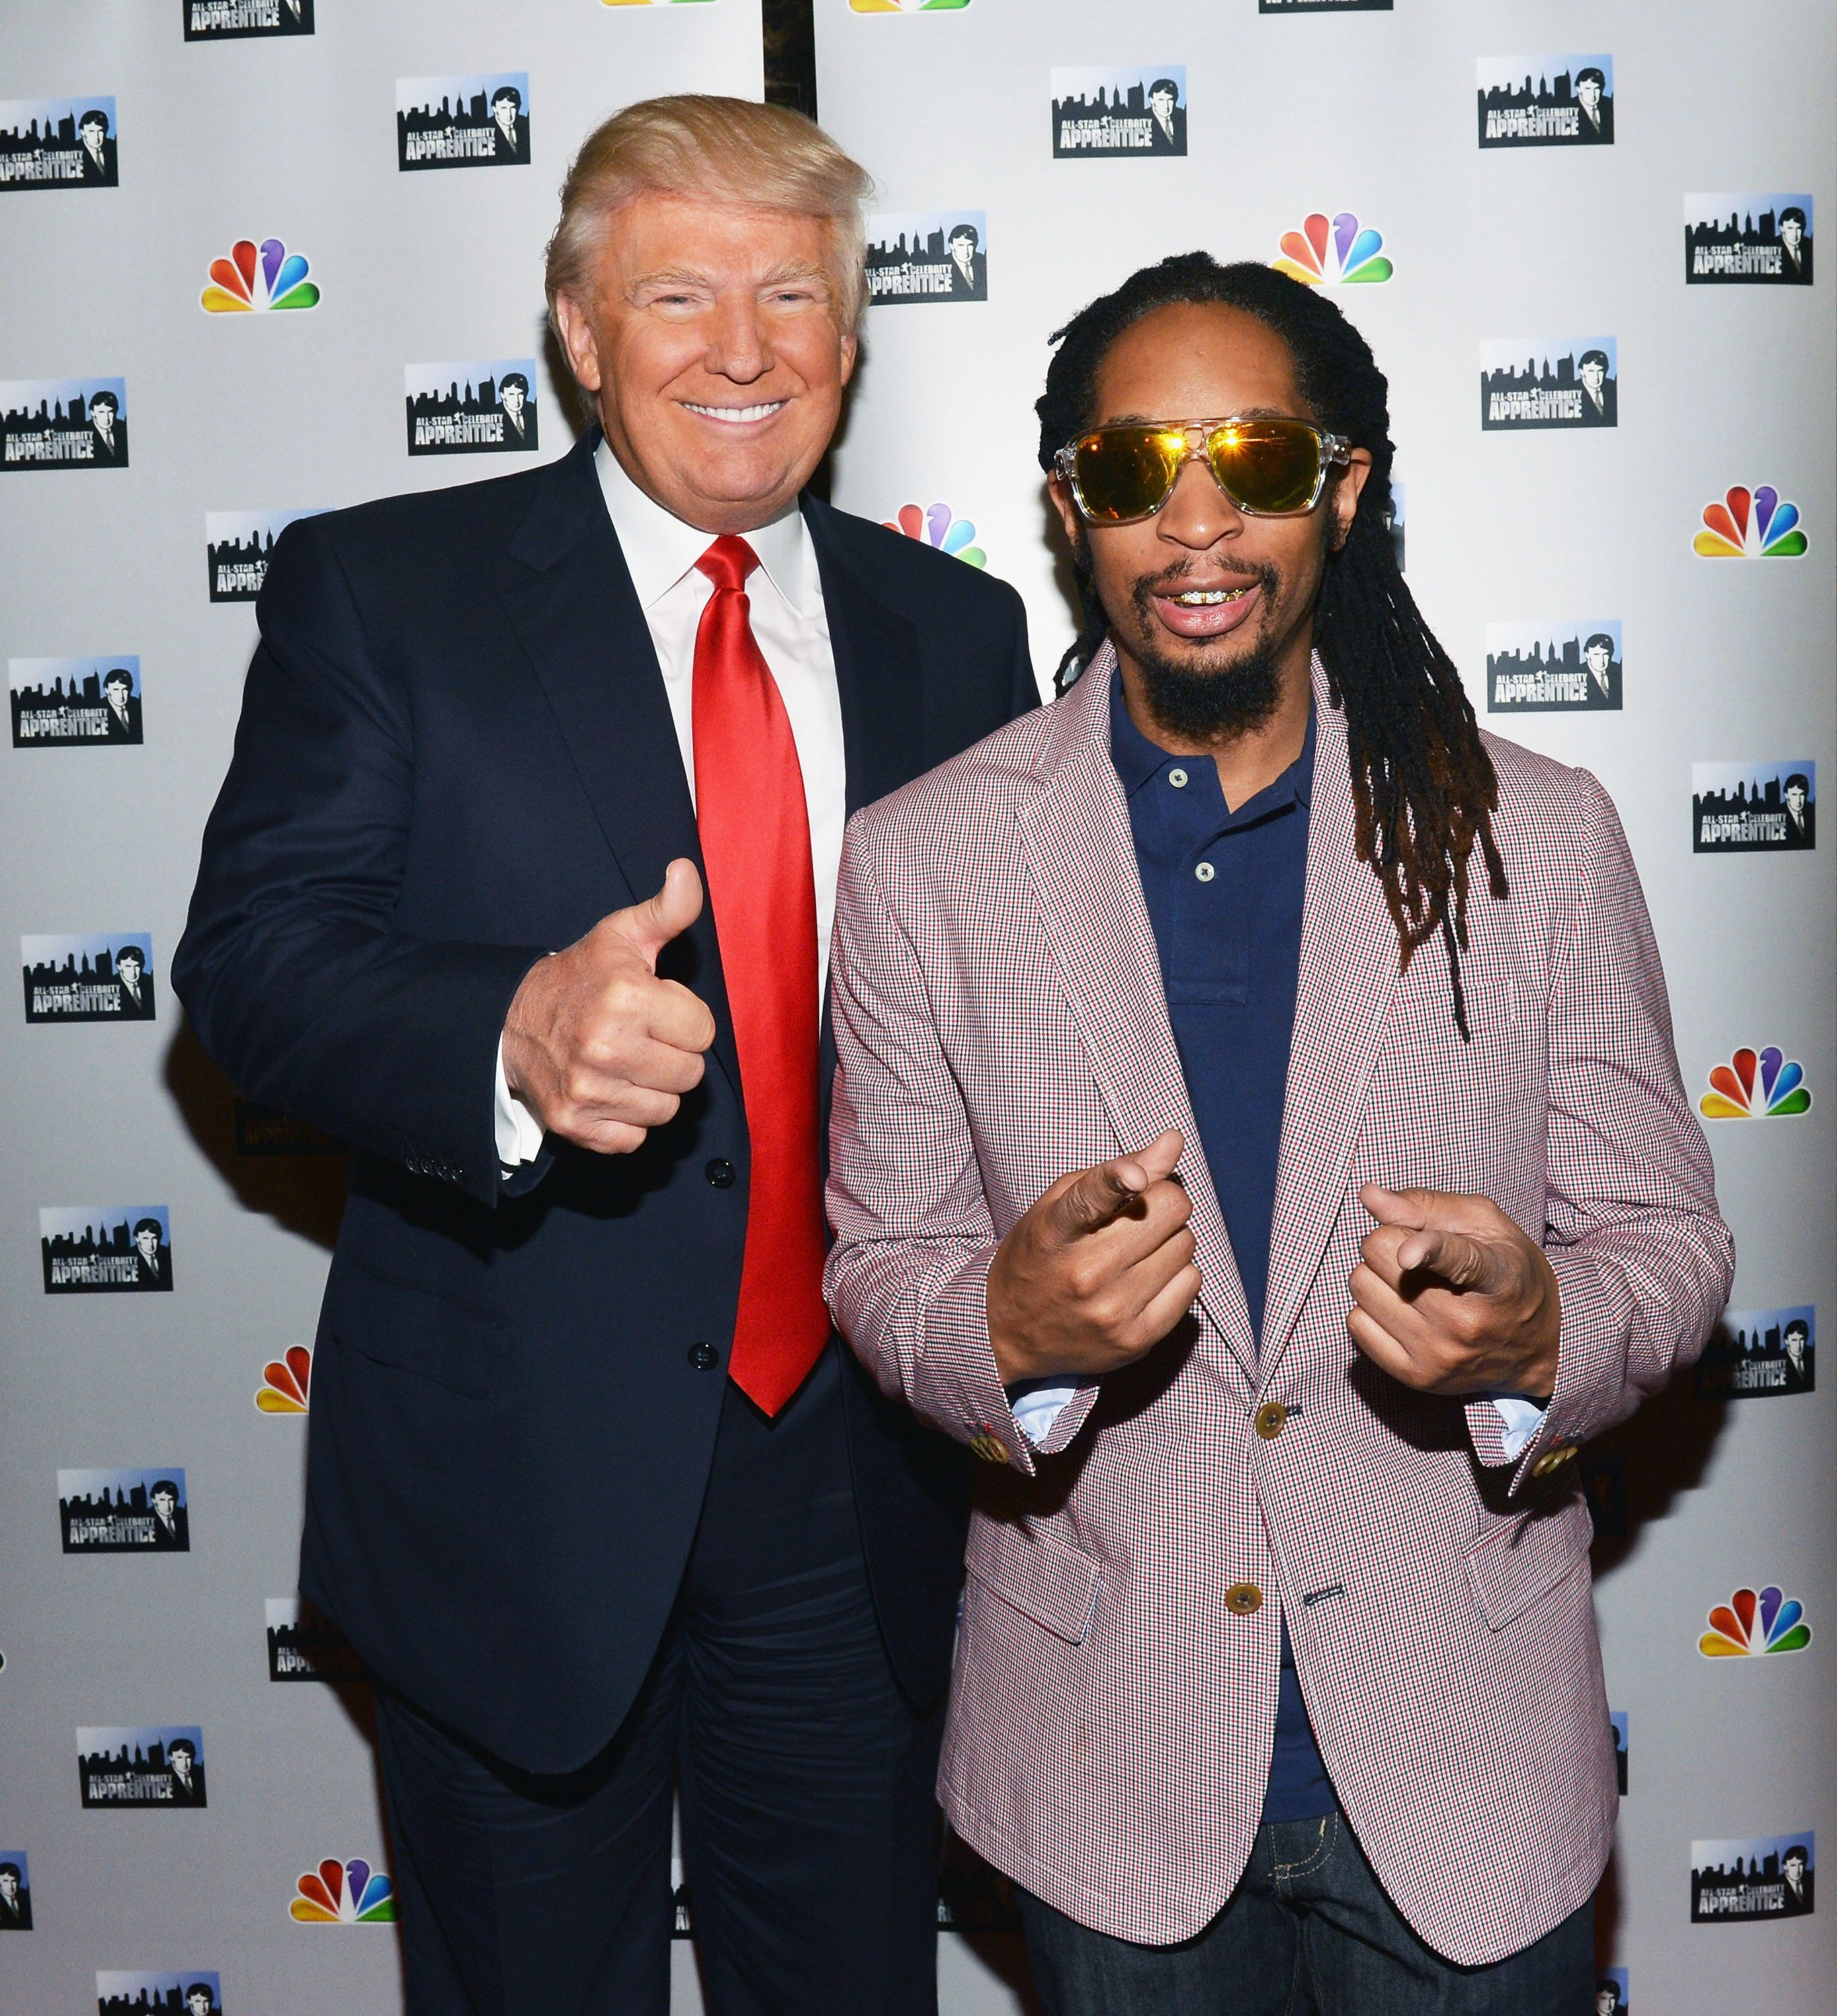 NEW YORK, NY - MAY 16:  Donald Trump (L) and Lil Jon attend 'All Star Celebrity Apprentice' Red Carpet Event at Trump Tower on May 16, 2013 in New York City.  (Photo by Slaven Vlasic/Getty Images)